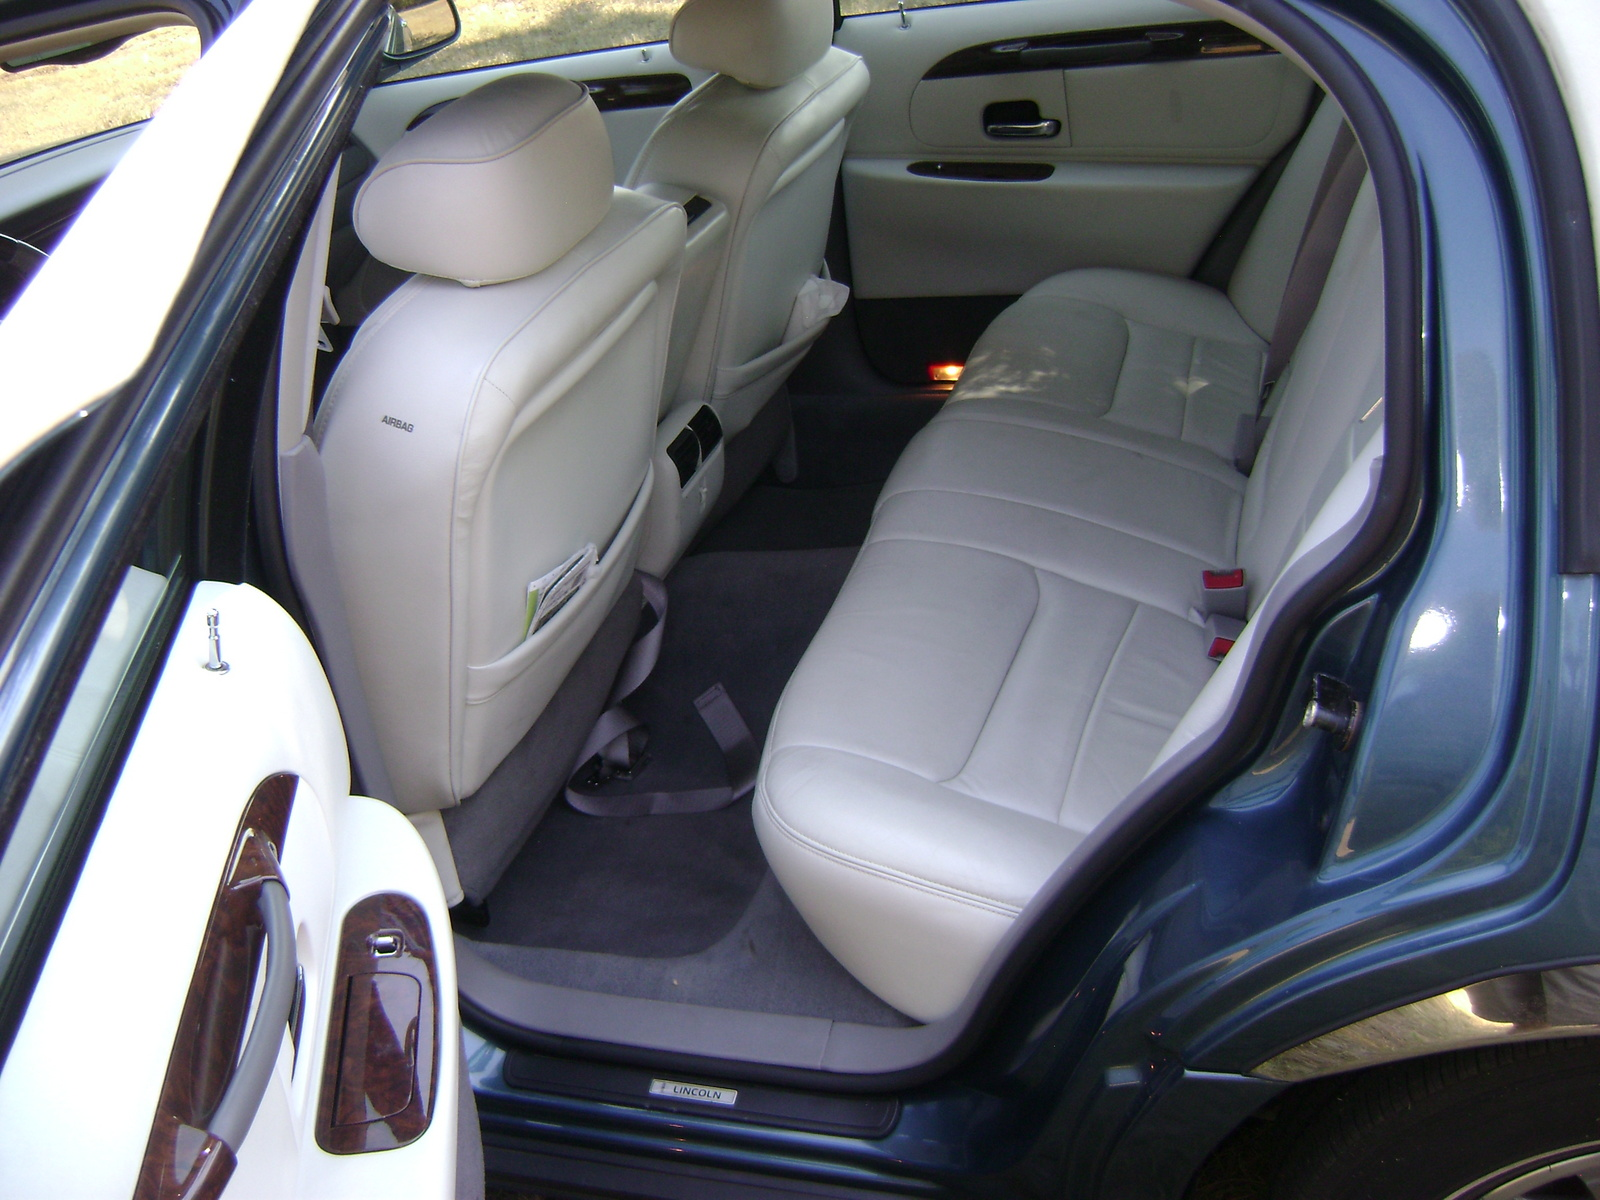 2002 lincoln town car interior pictures cargurus. Black Bedroom Furniture Sets. Home Design Ideas